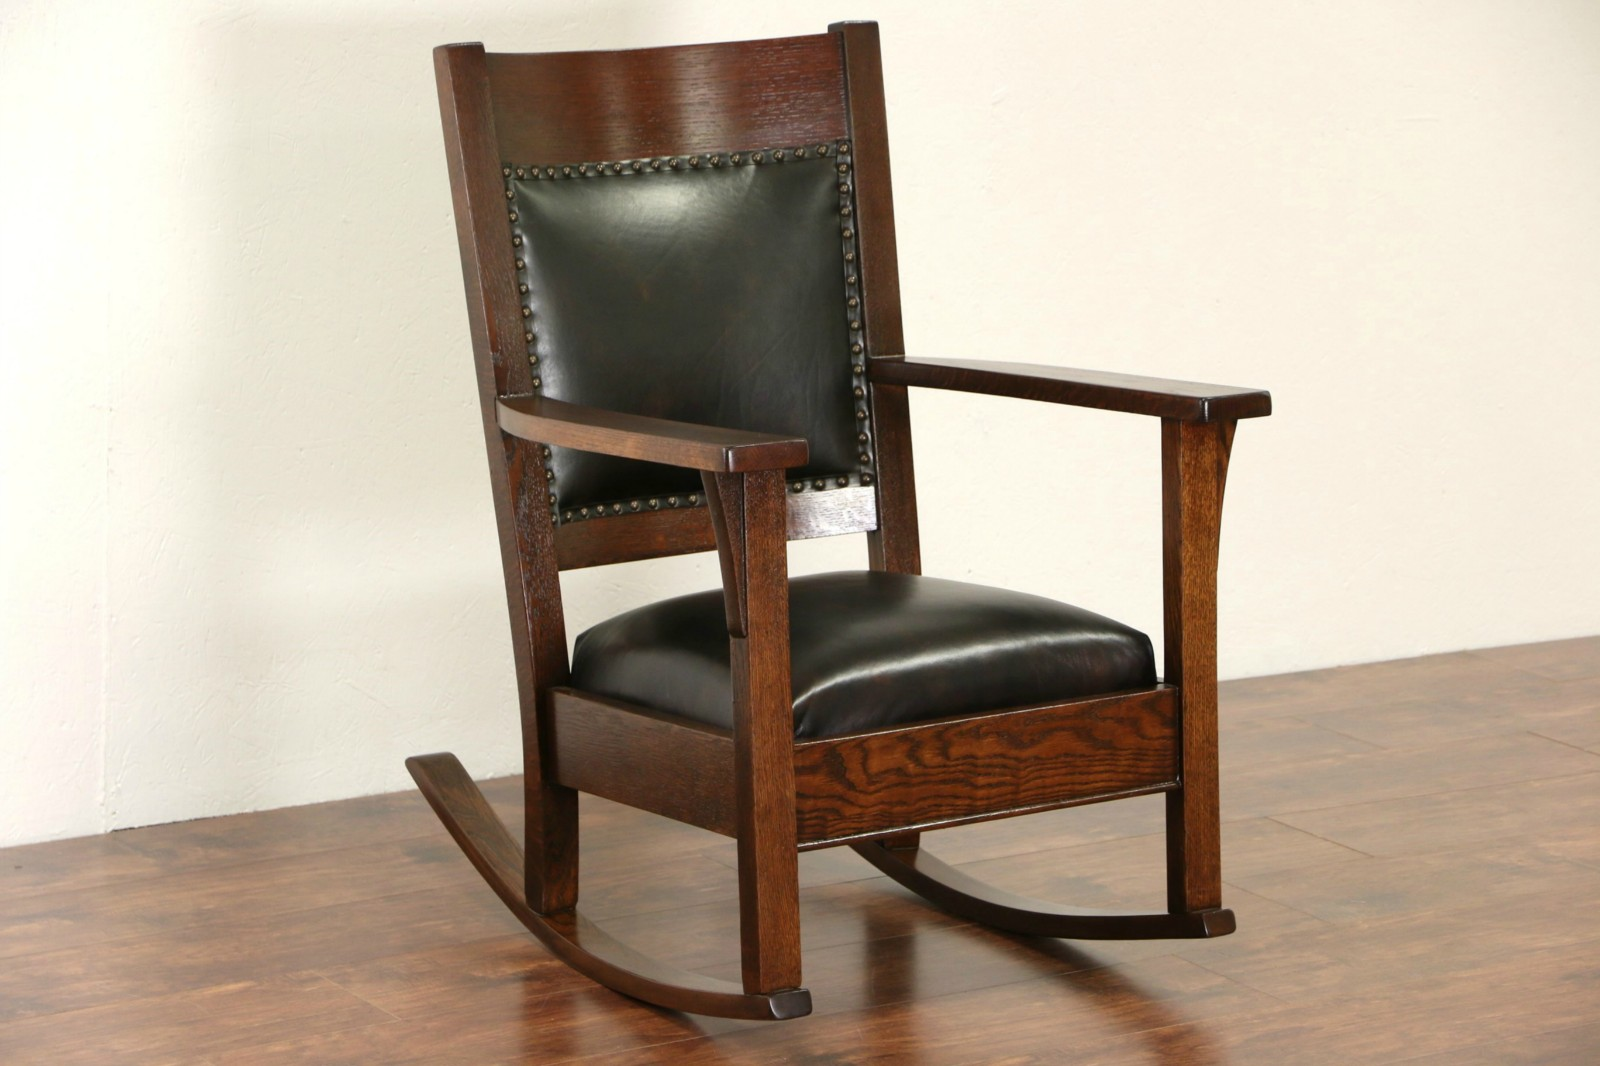 Mission chair leather - Arts Crafts Mission Oak 1910 Antique Rocking Chair New Leather Rocker